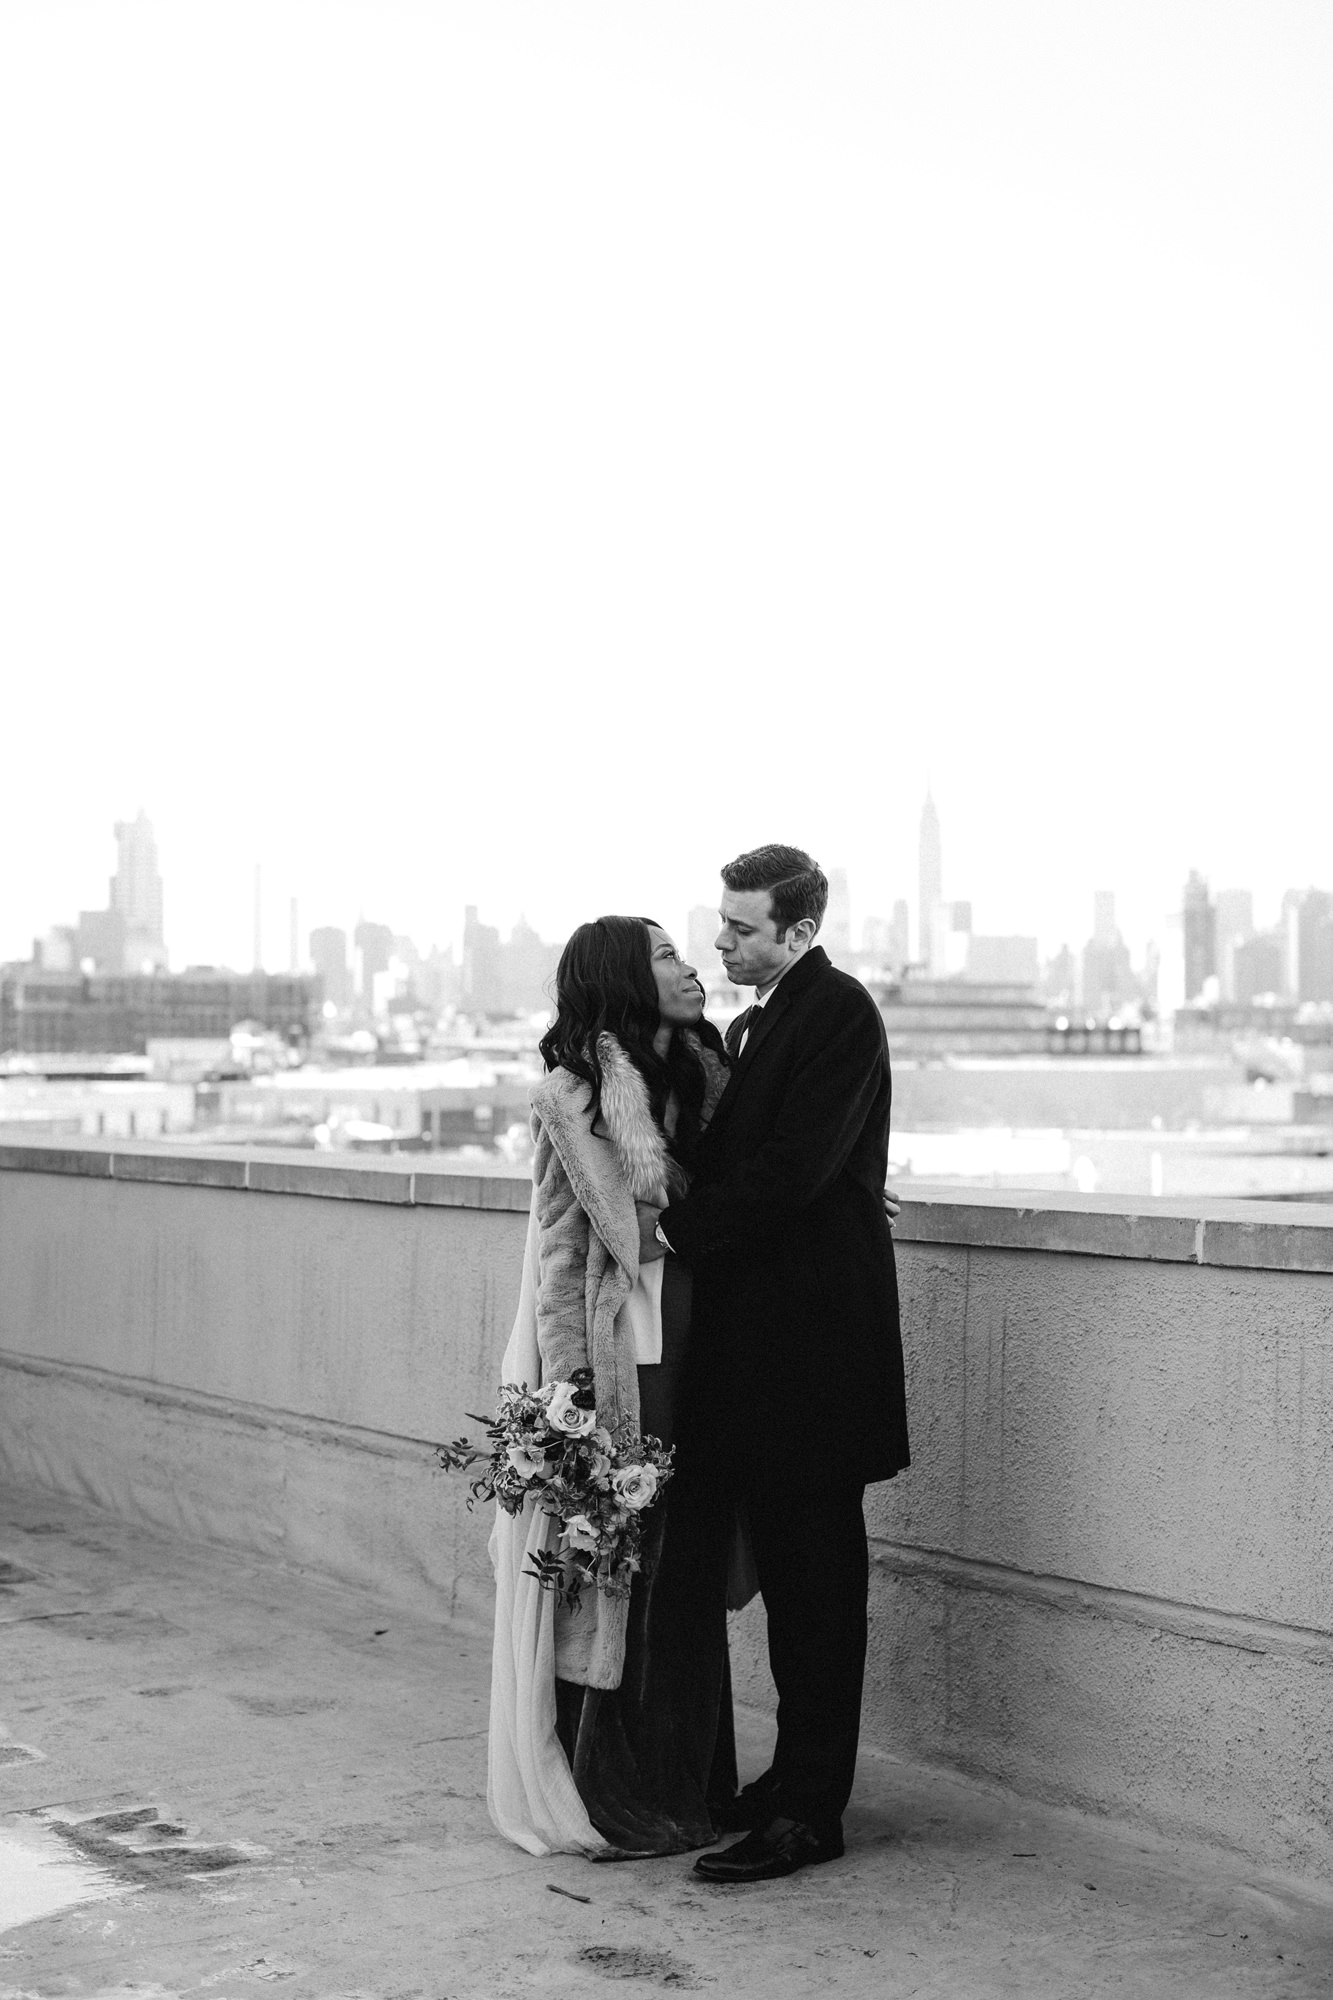 BROOKLYN_ELOPEMENT_SAMMBLAKE_NDE_383.jpg